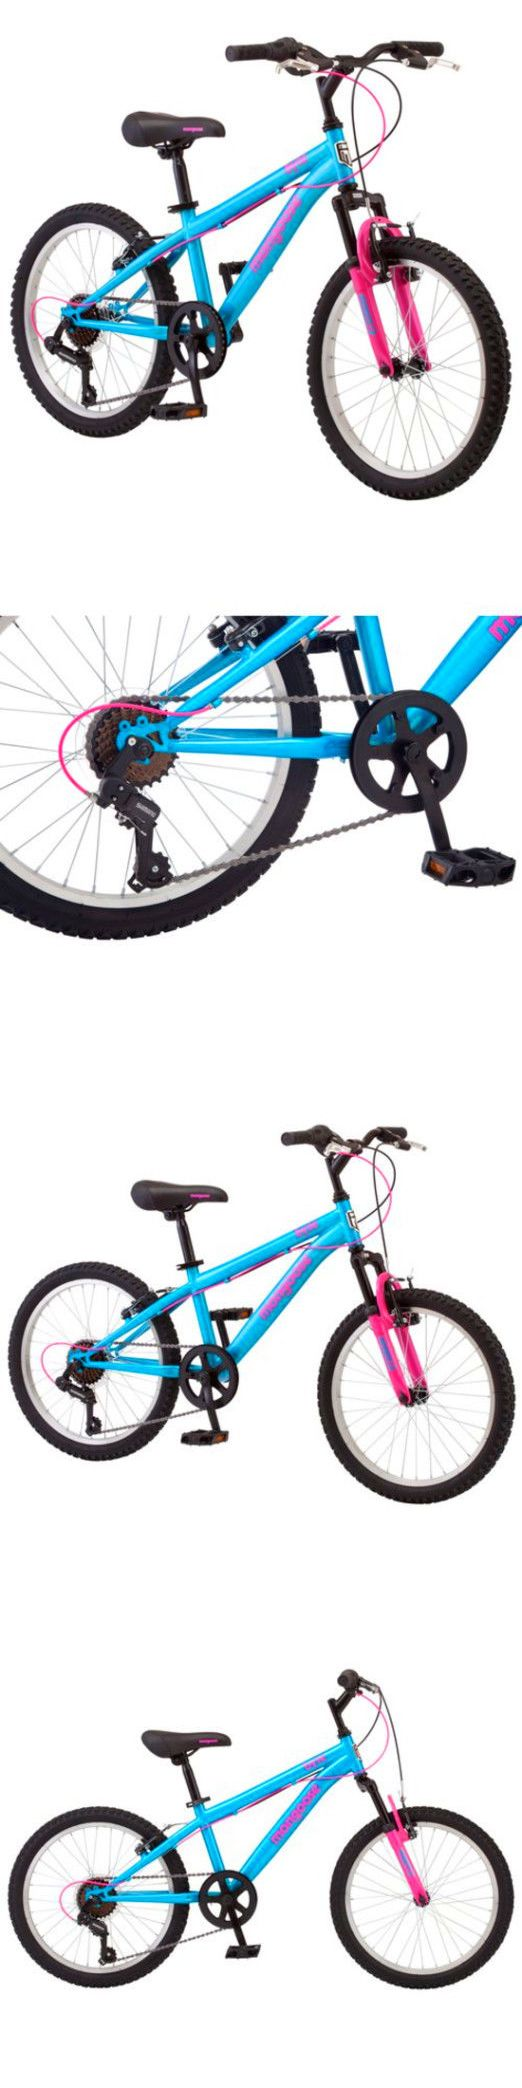 Other Cycling 2904: 20 Mongoose Byte Girls 7 Speed Suspension Mountain Bike Steel Frame Bicycle New BUY IT NOW ONLY: $136.13